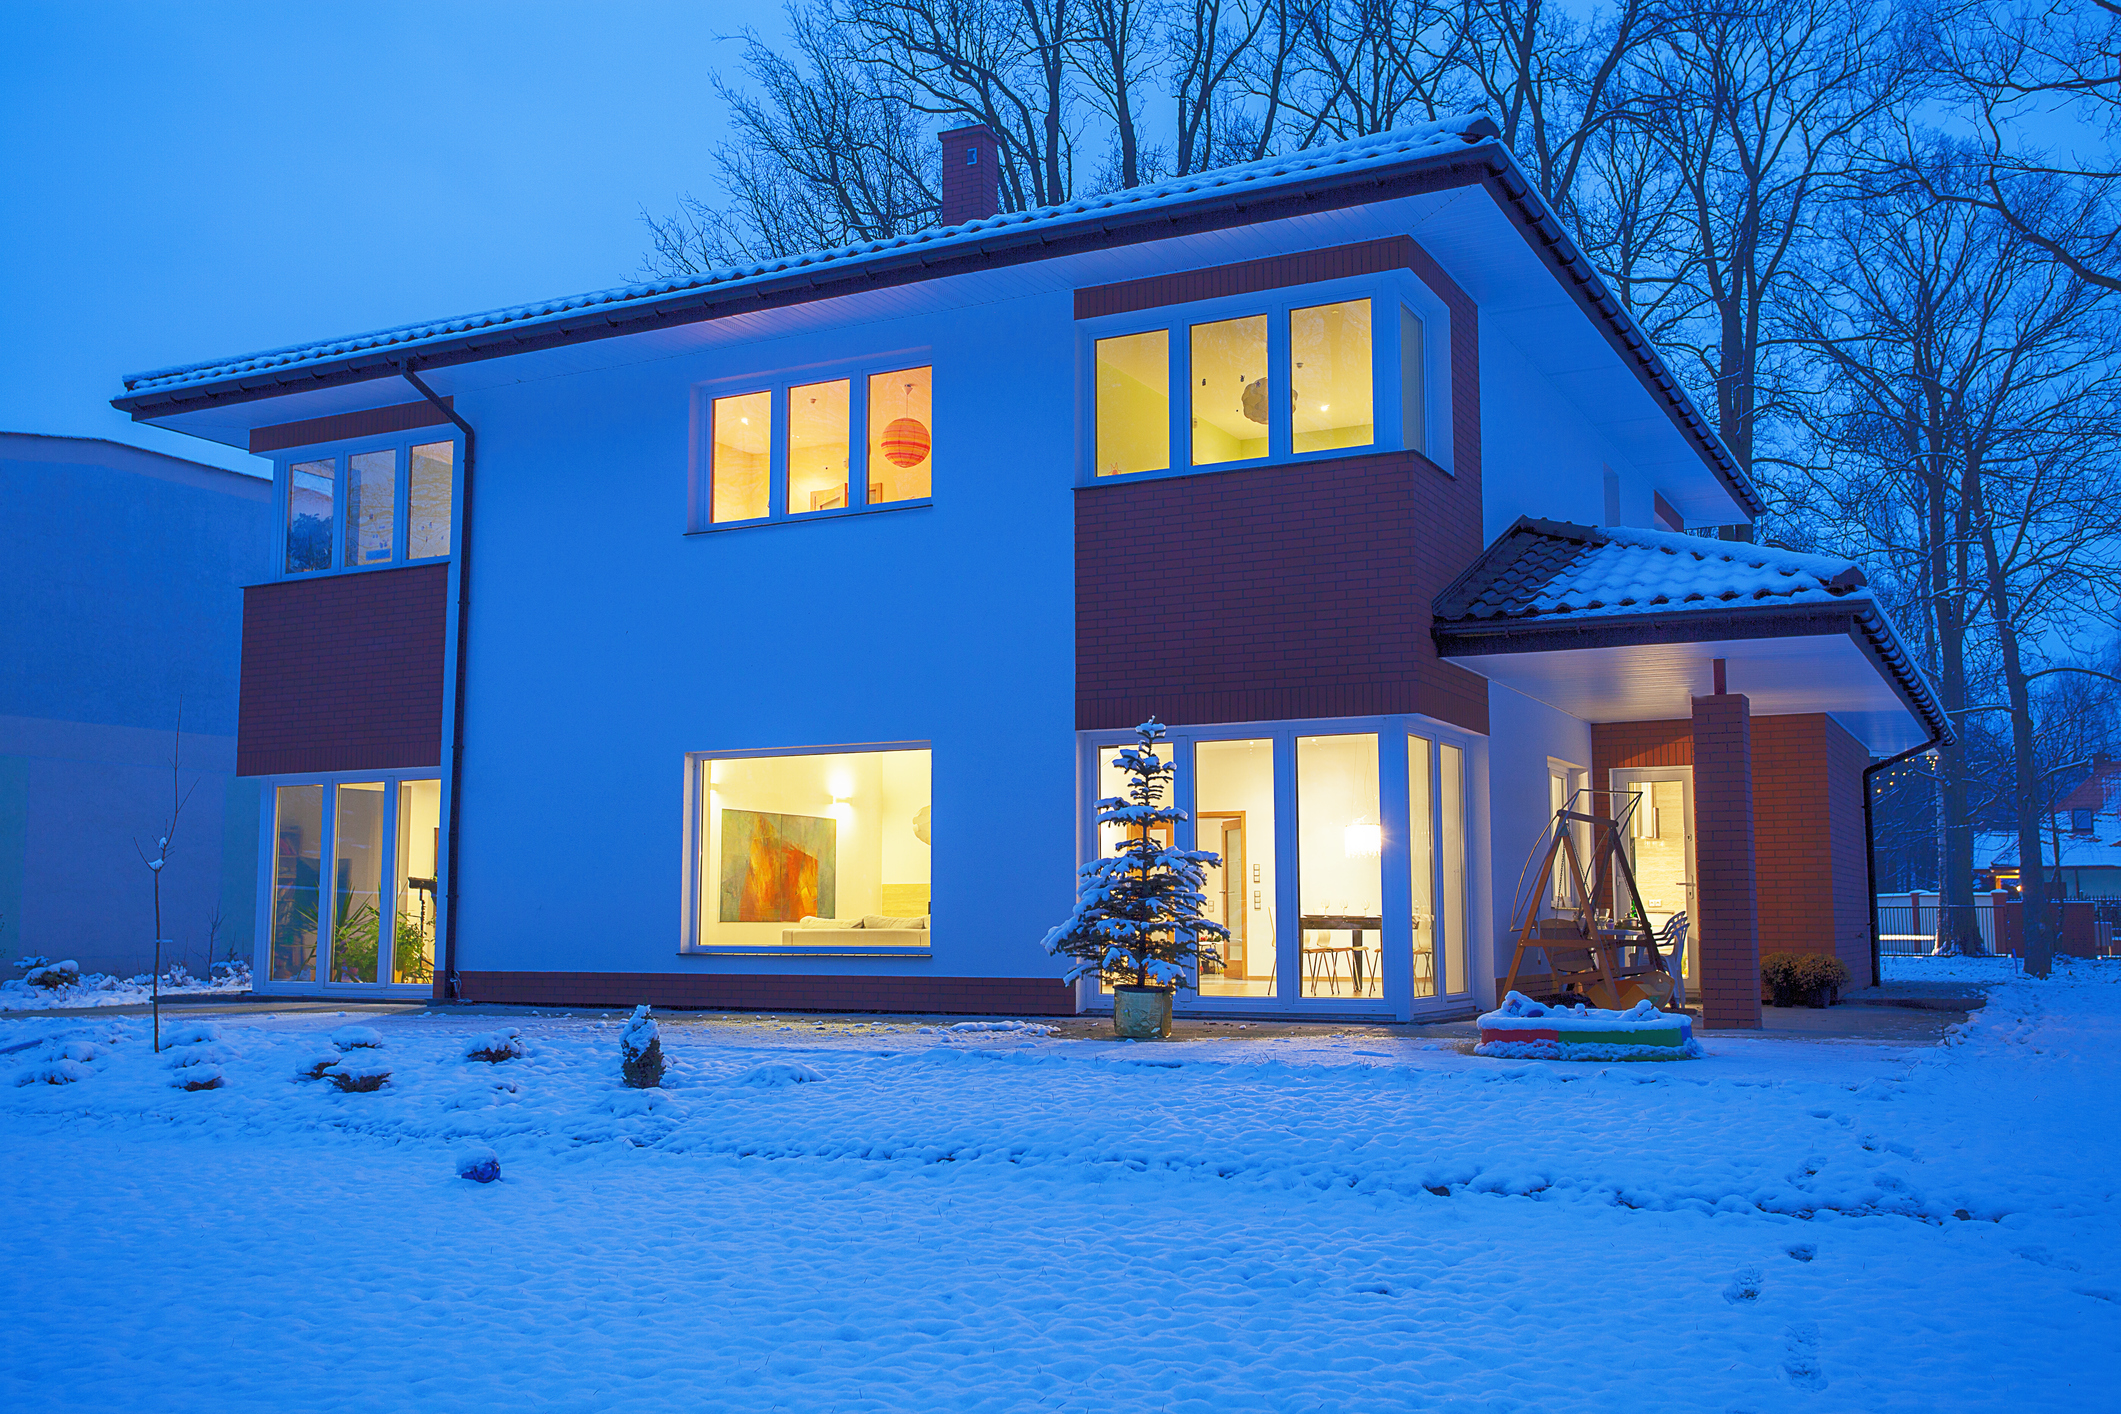 Snowy Flat Roof Home